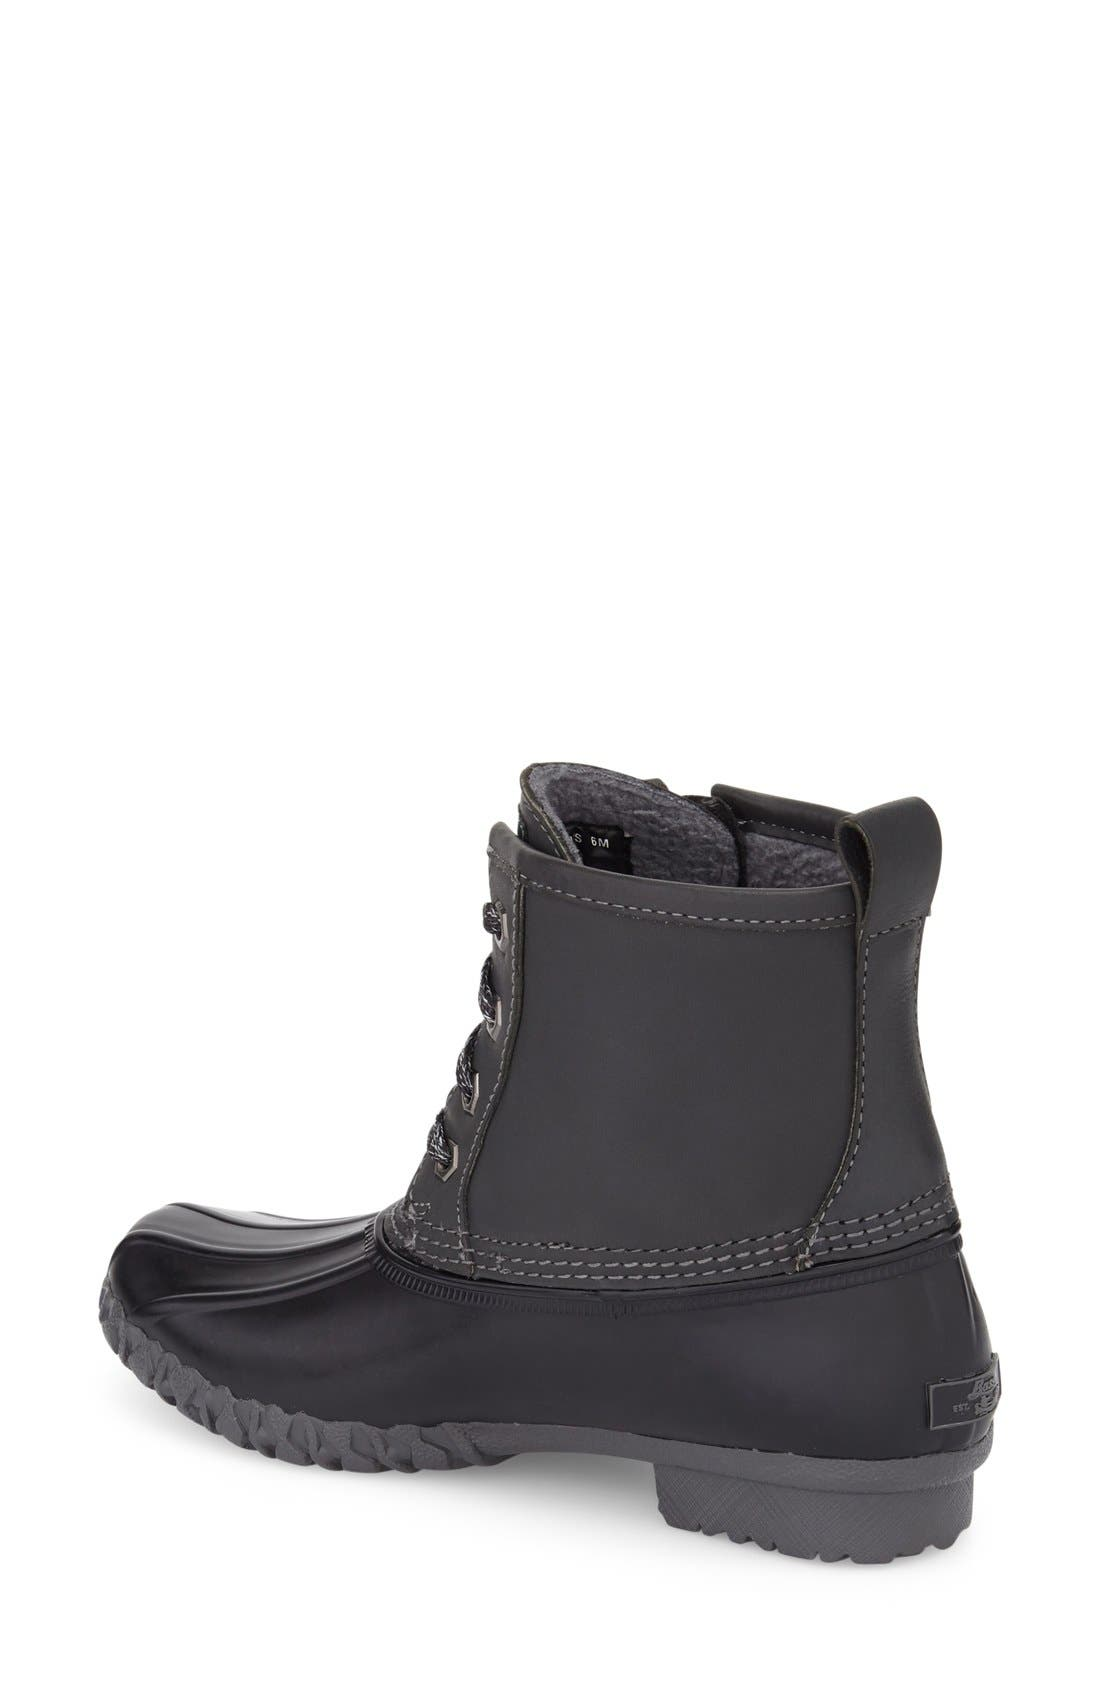 Danielle Waterproof Duck Boot,                             Alternate thumbnail 2, color,                             020